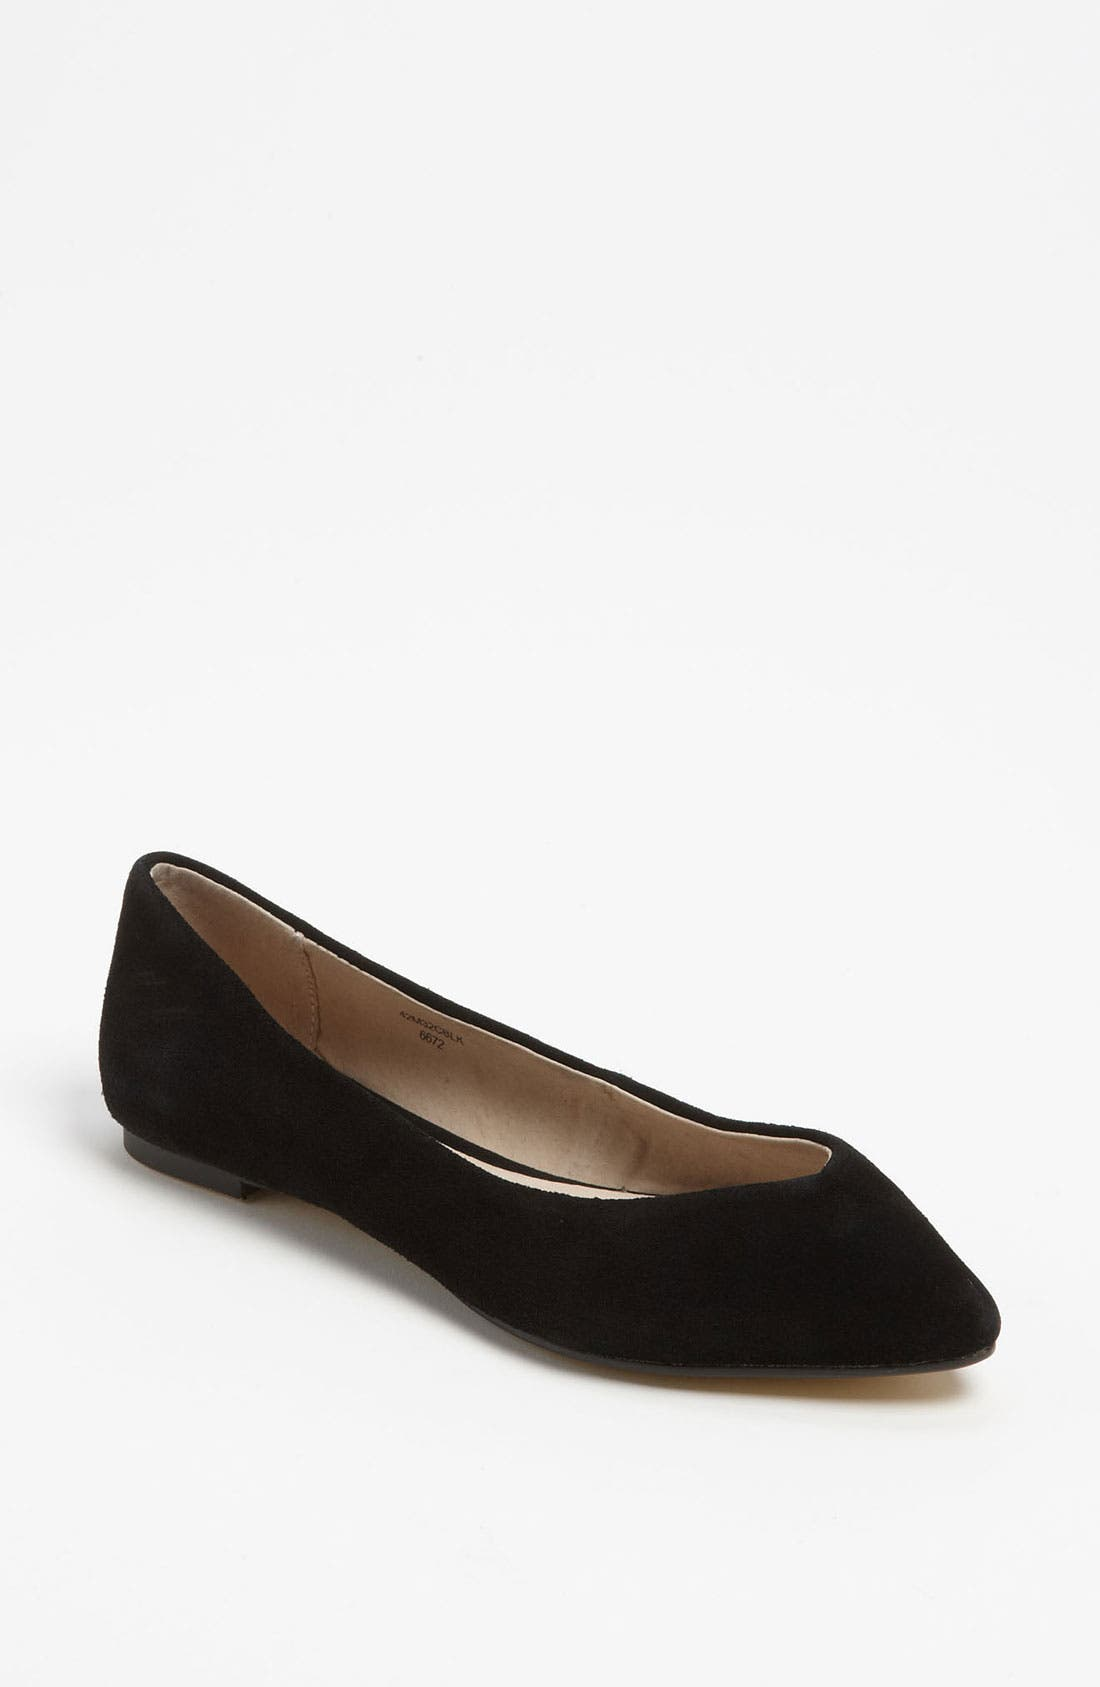 Main Image - Topshop 'Milly' Flat